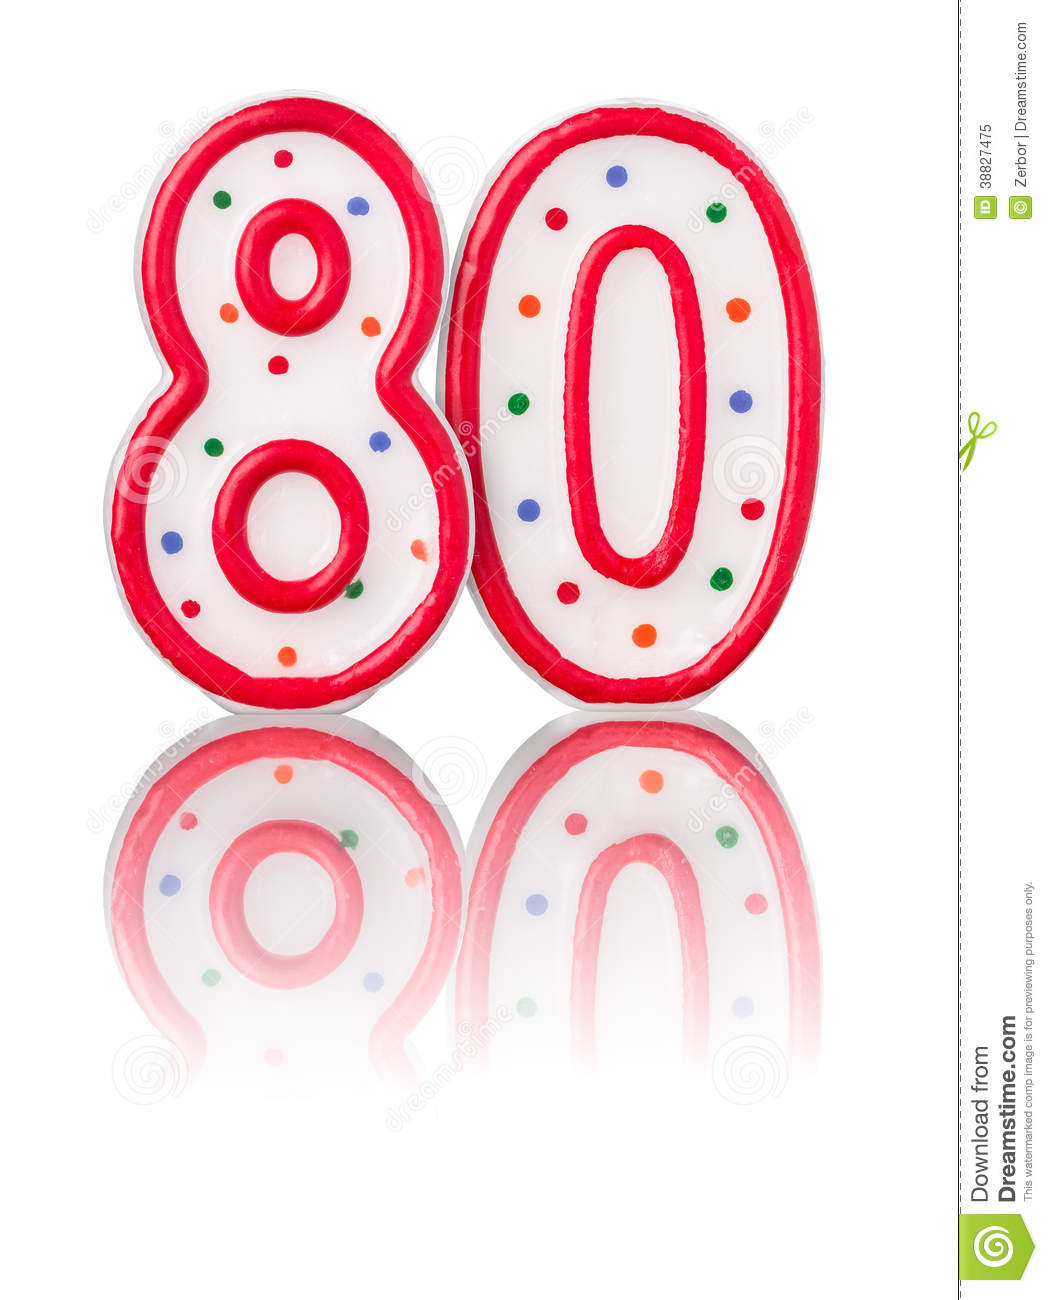 Number clipartfest. 80 clipart